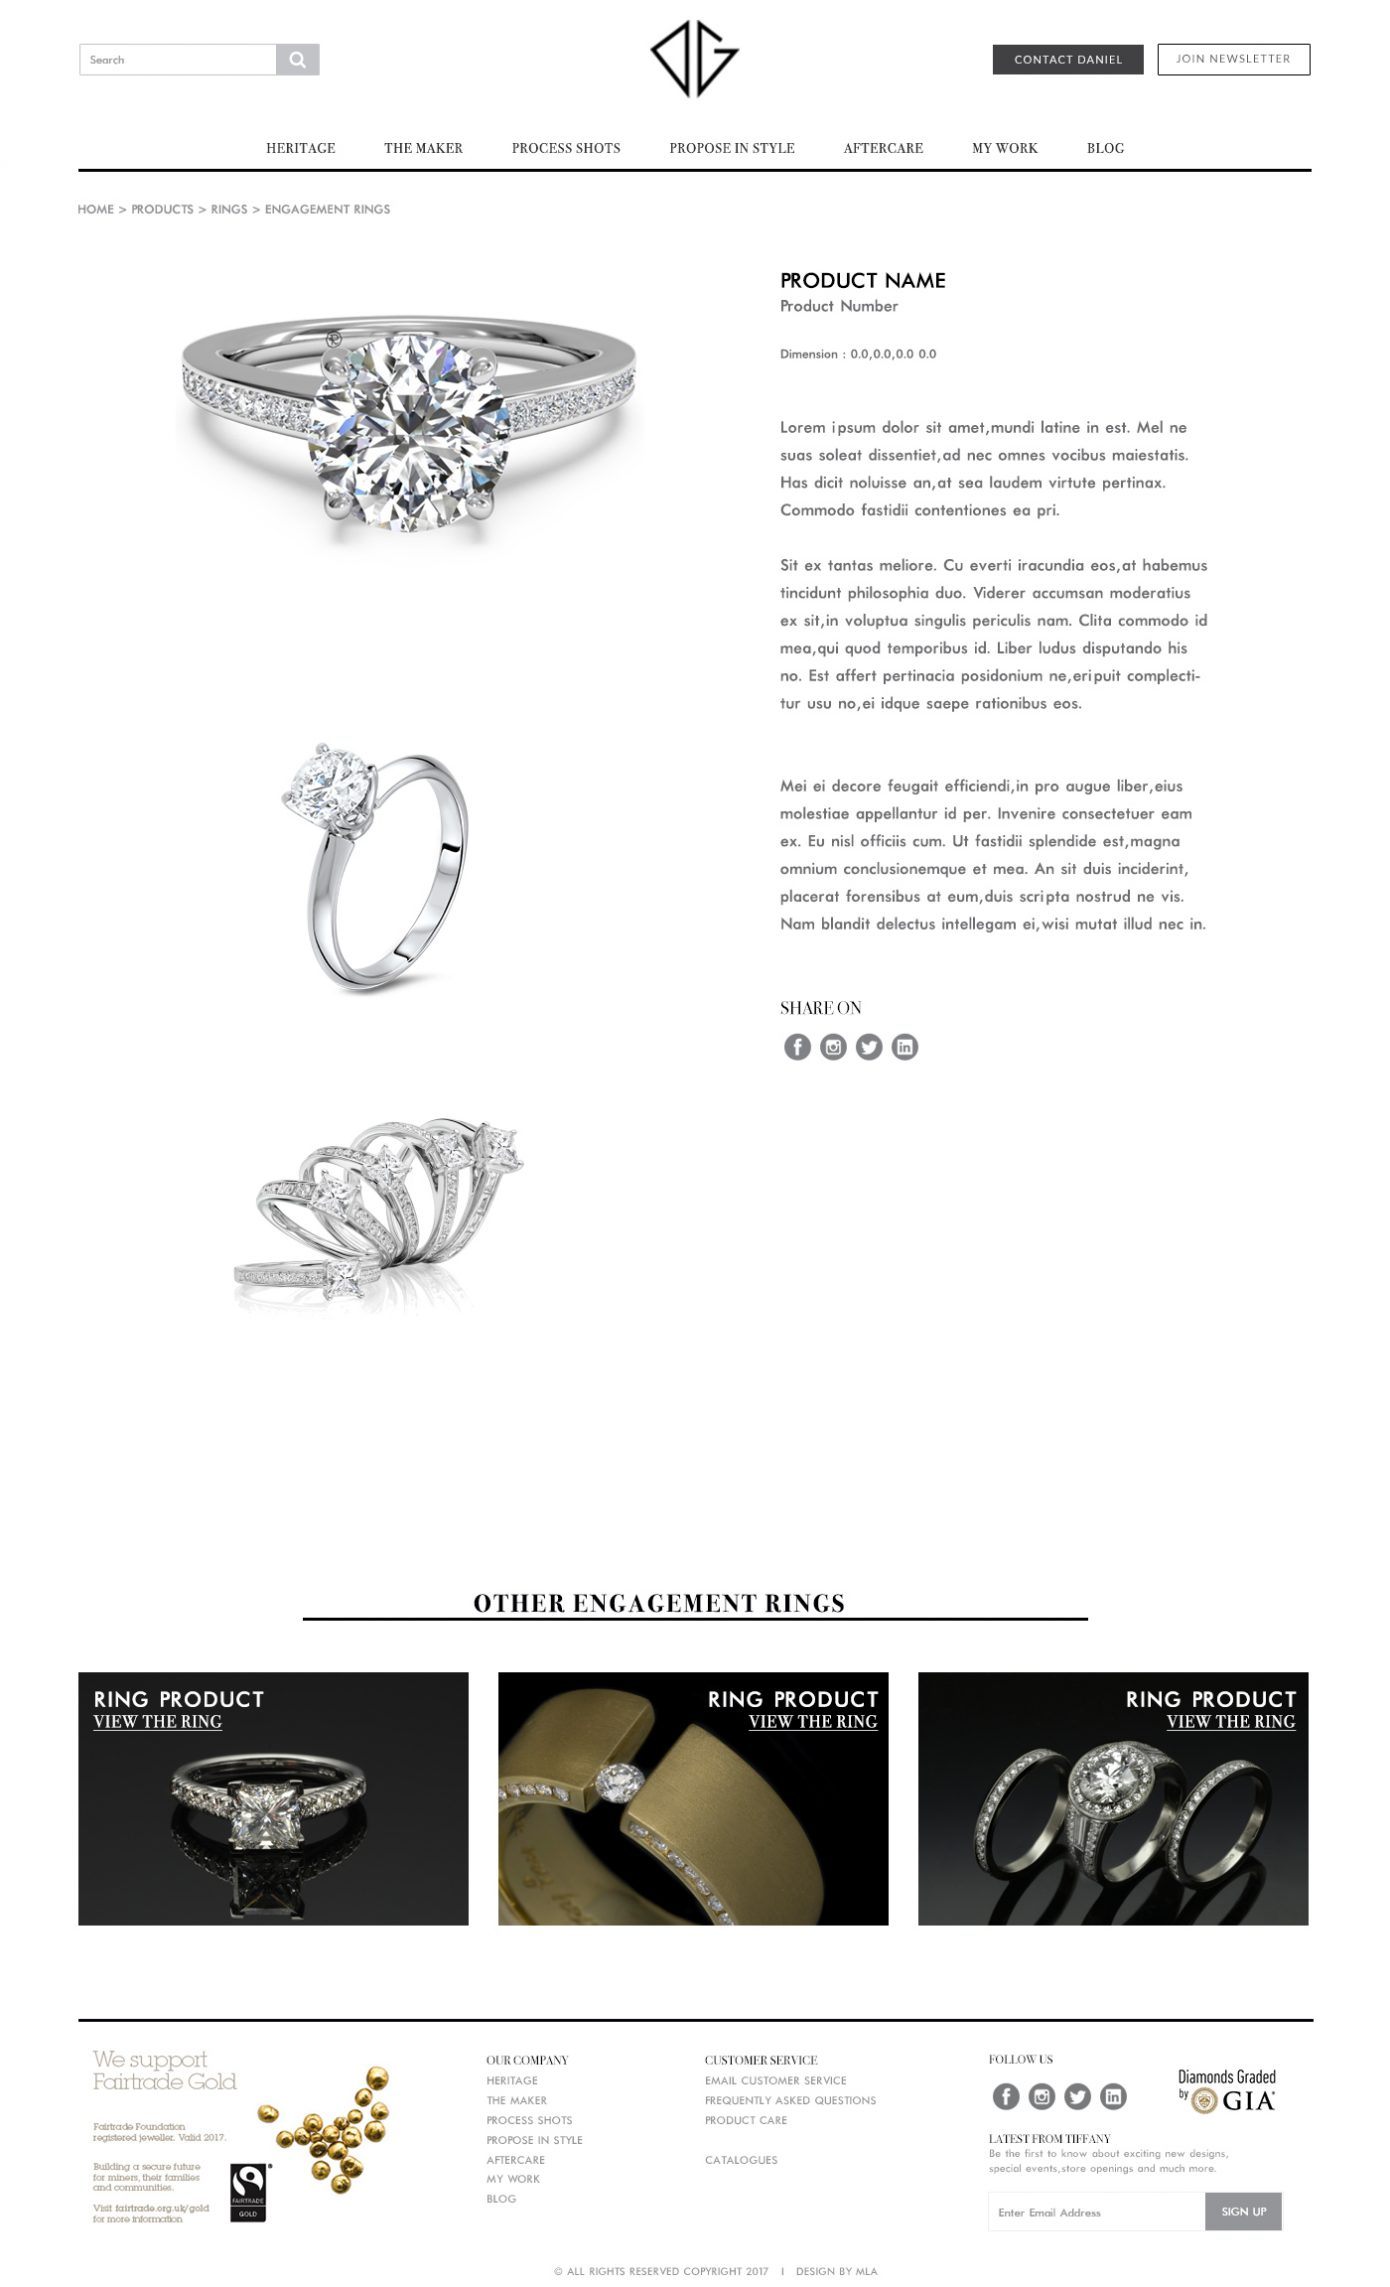 Dg bespoke jewellery product page design - Website design London - web design agency london